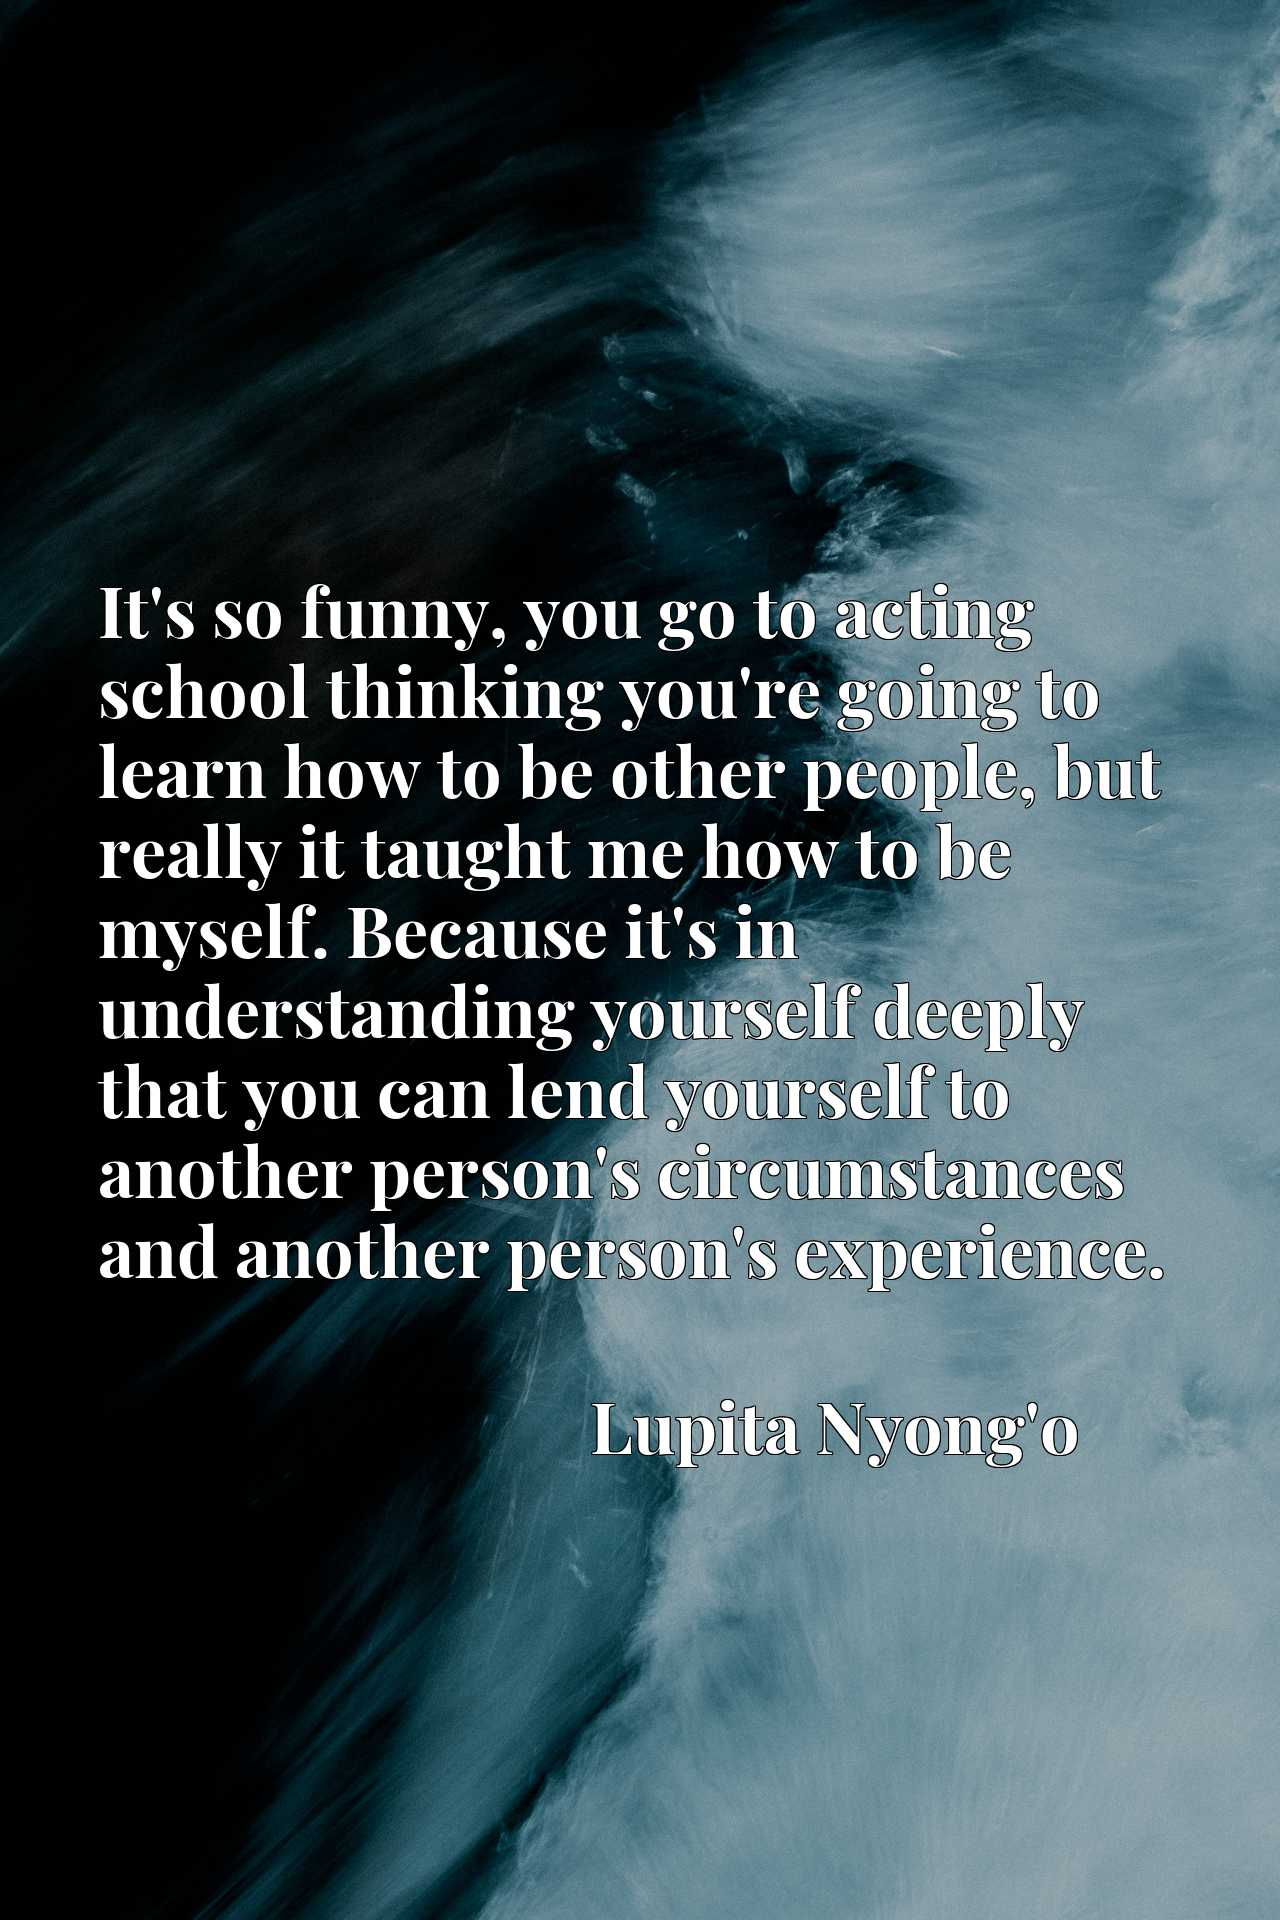 It's so funny, you go to acting school thinking you're going to learn how to be other people, but really it taught me how to be myself. Because it's in understanding yourself deeply that you can lend yourself to another person's circumstances and another person's experience.